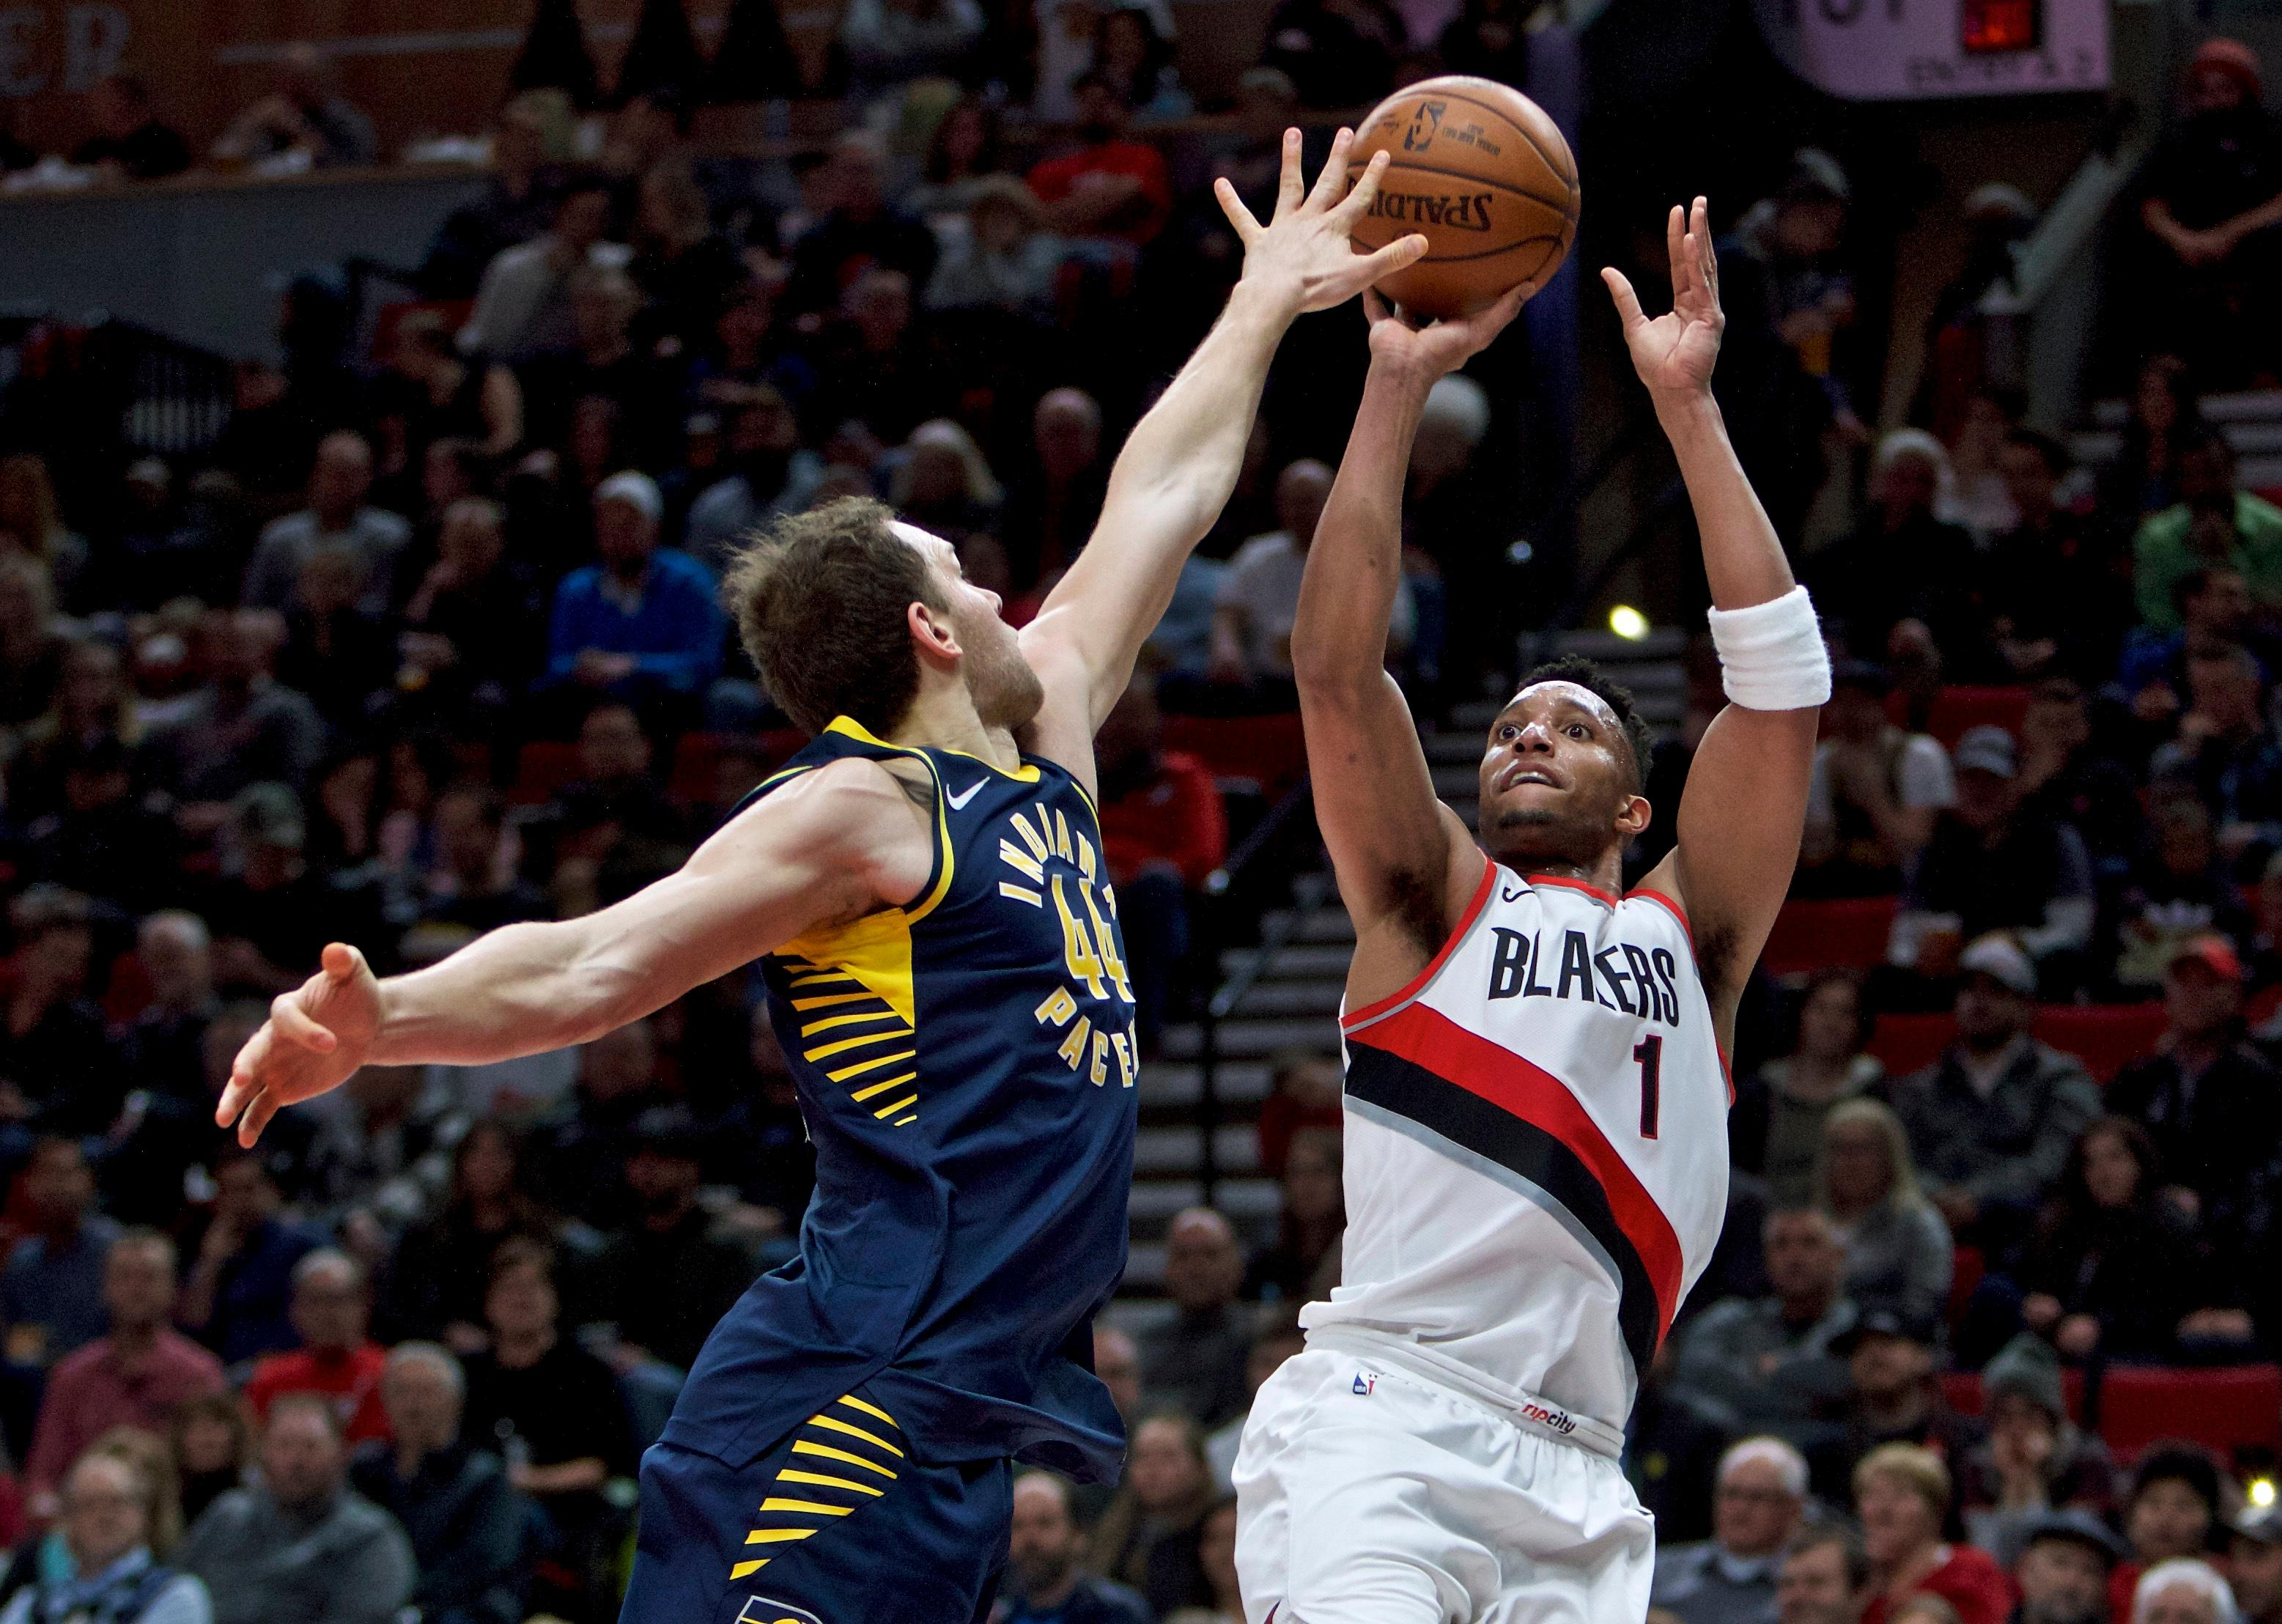 Portland Trail Blazers guard Evan Turner, right, shoots over Indiana Pacers forward Bojan Bogdanovic during the second half of an NBA basketball game in Portland, Ore., Thursday, Jan. 18, 2018. (AP Photo/Craig Mitchelldyer)